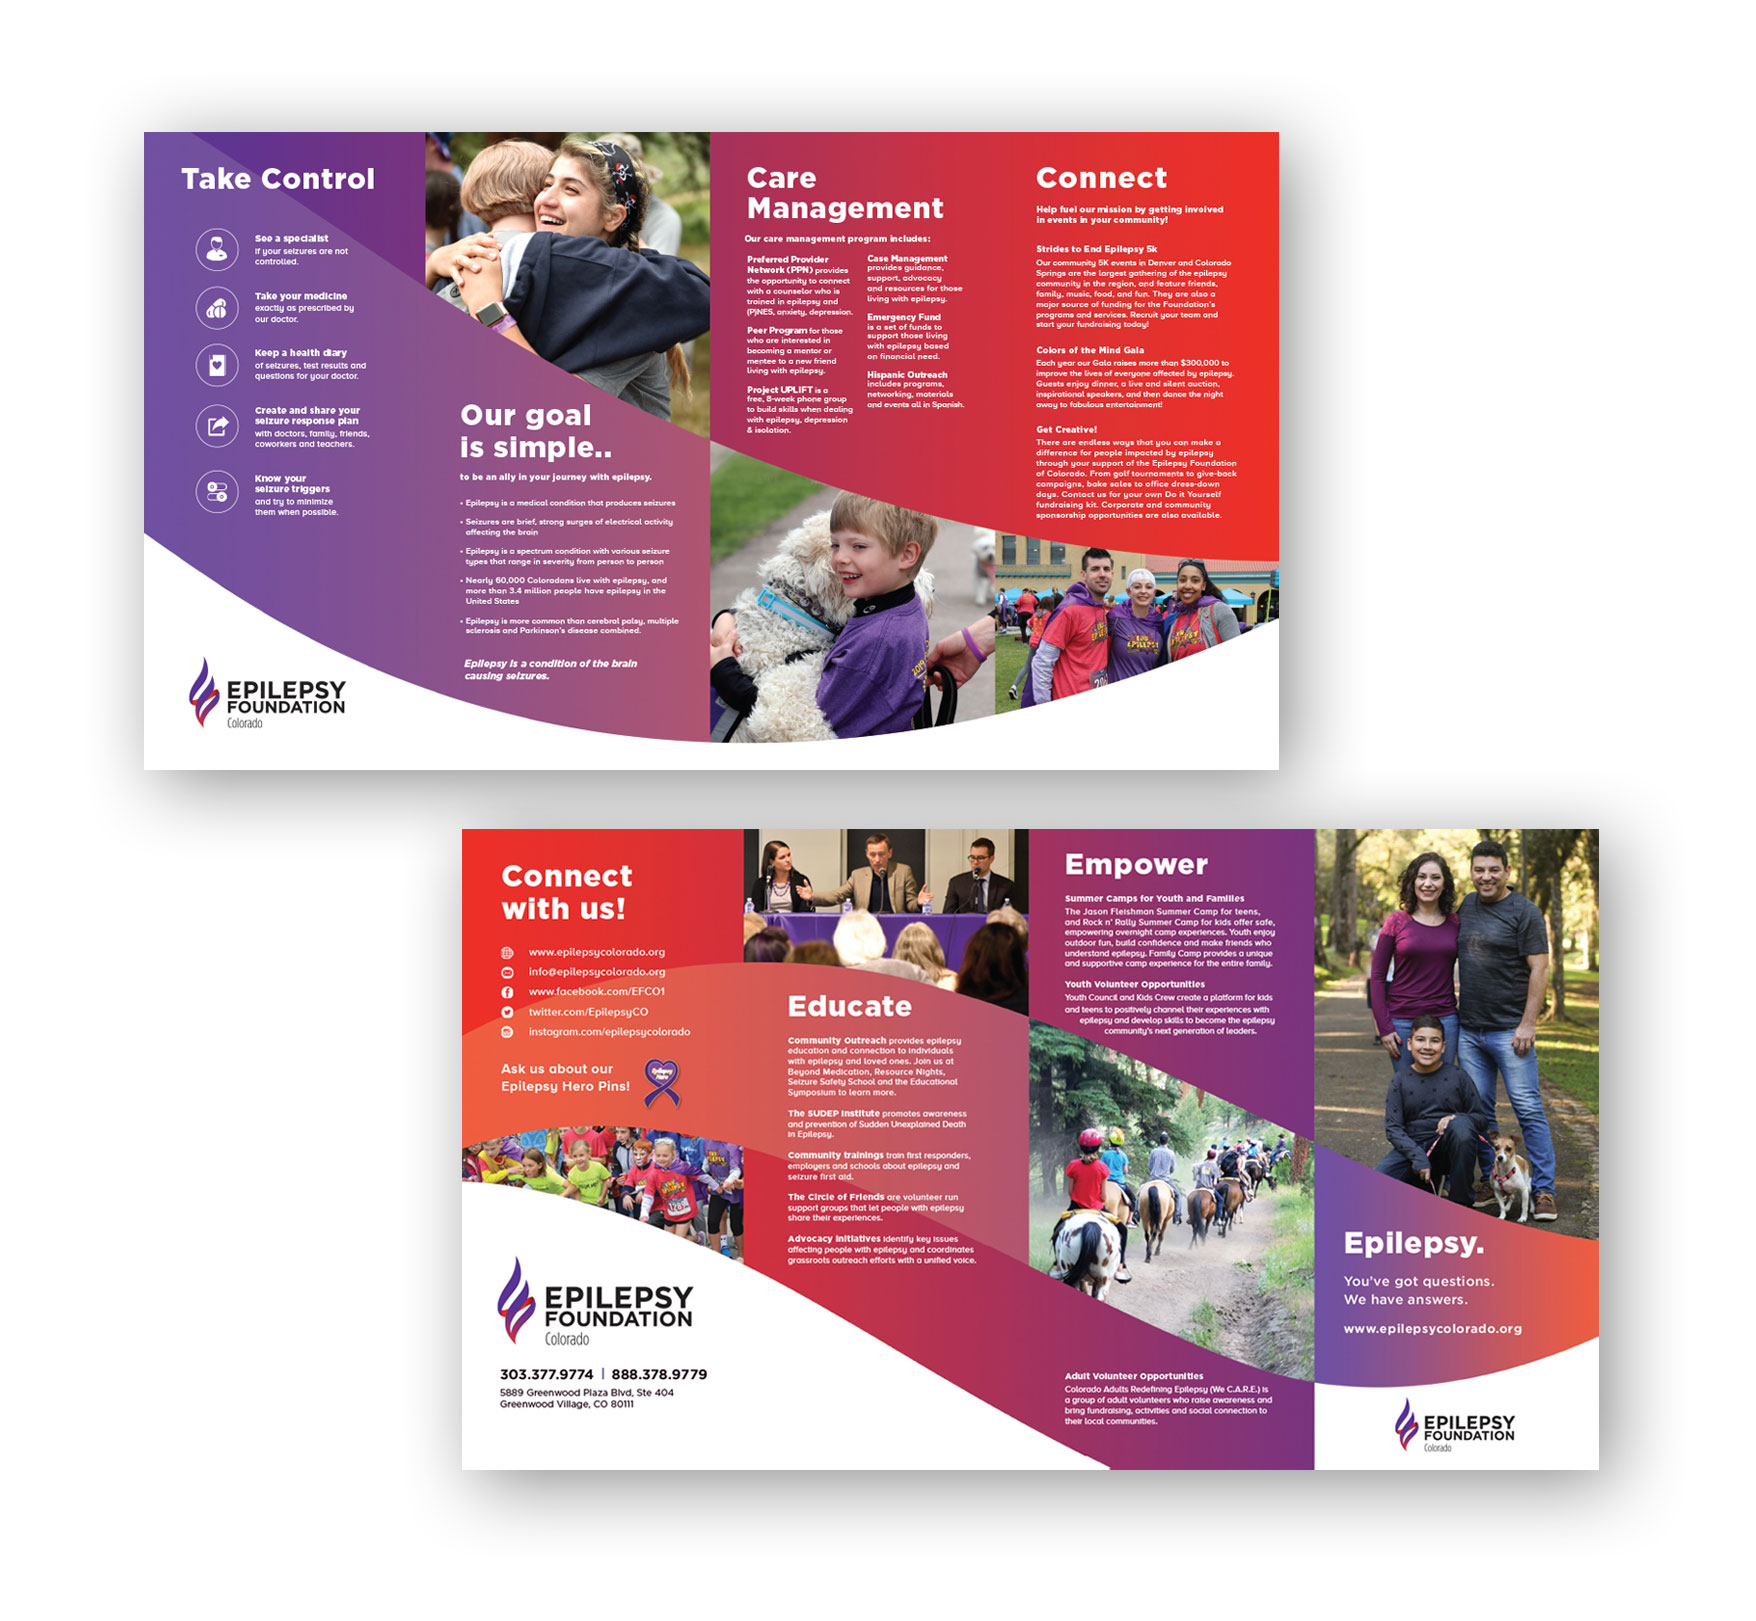 Epilepsy Foundation Brochure